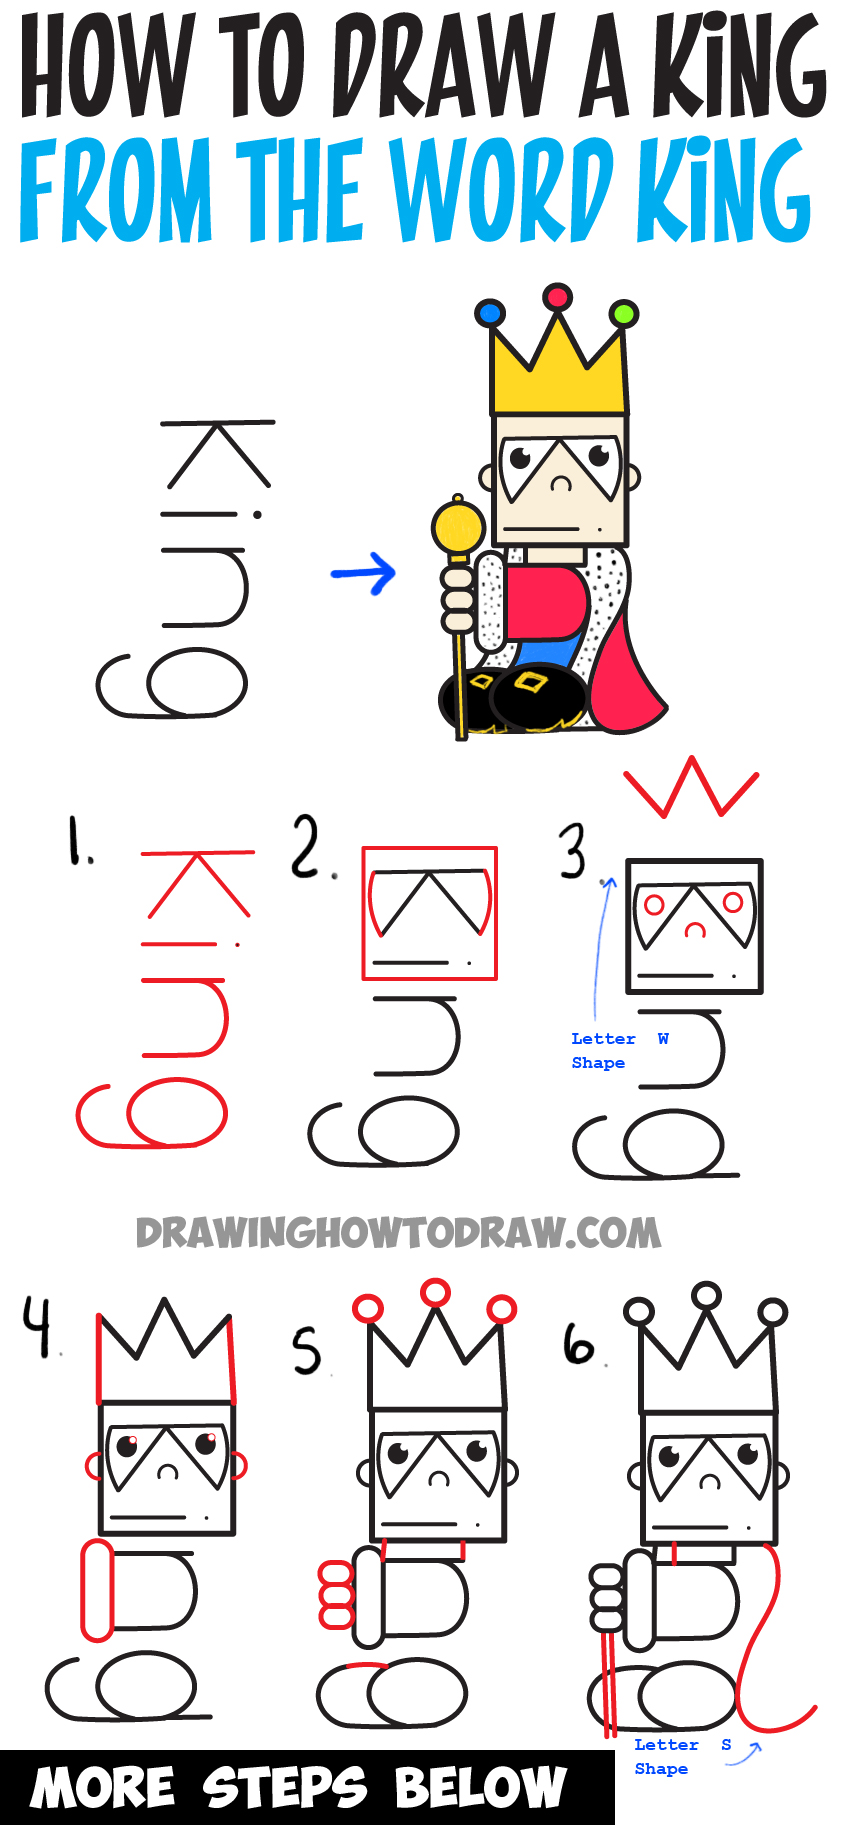 How to draw a king 96